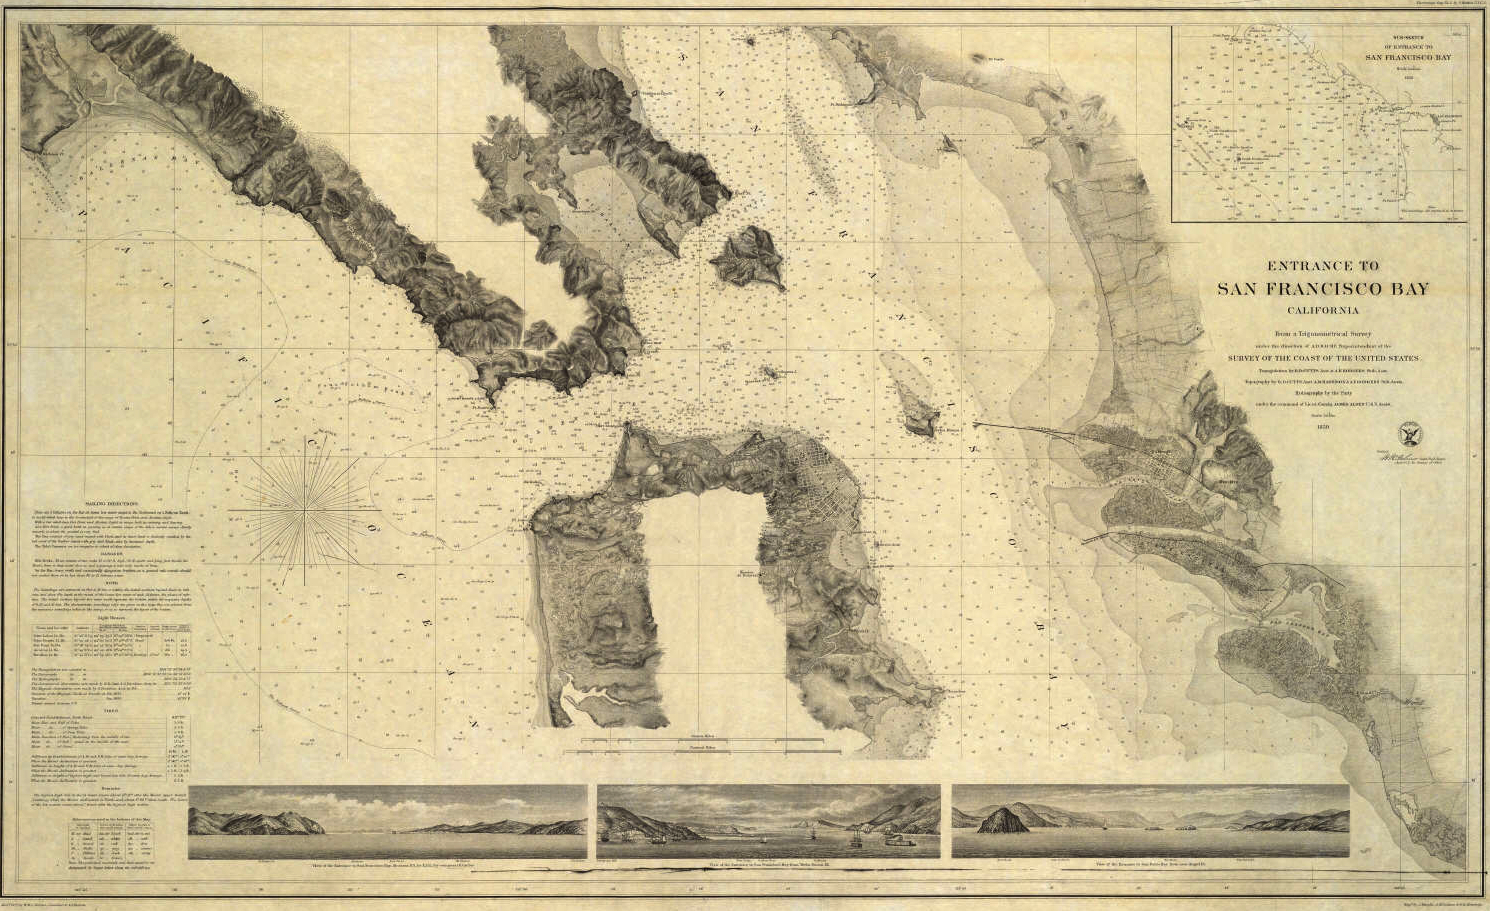 Depth Charges of the Waters in SF- 1869 Coastal Survey